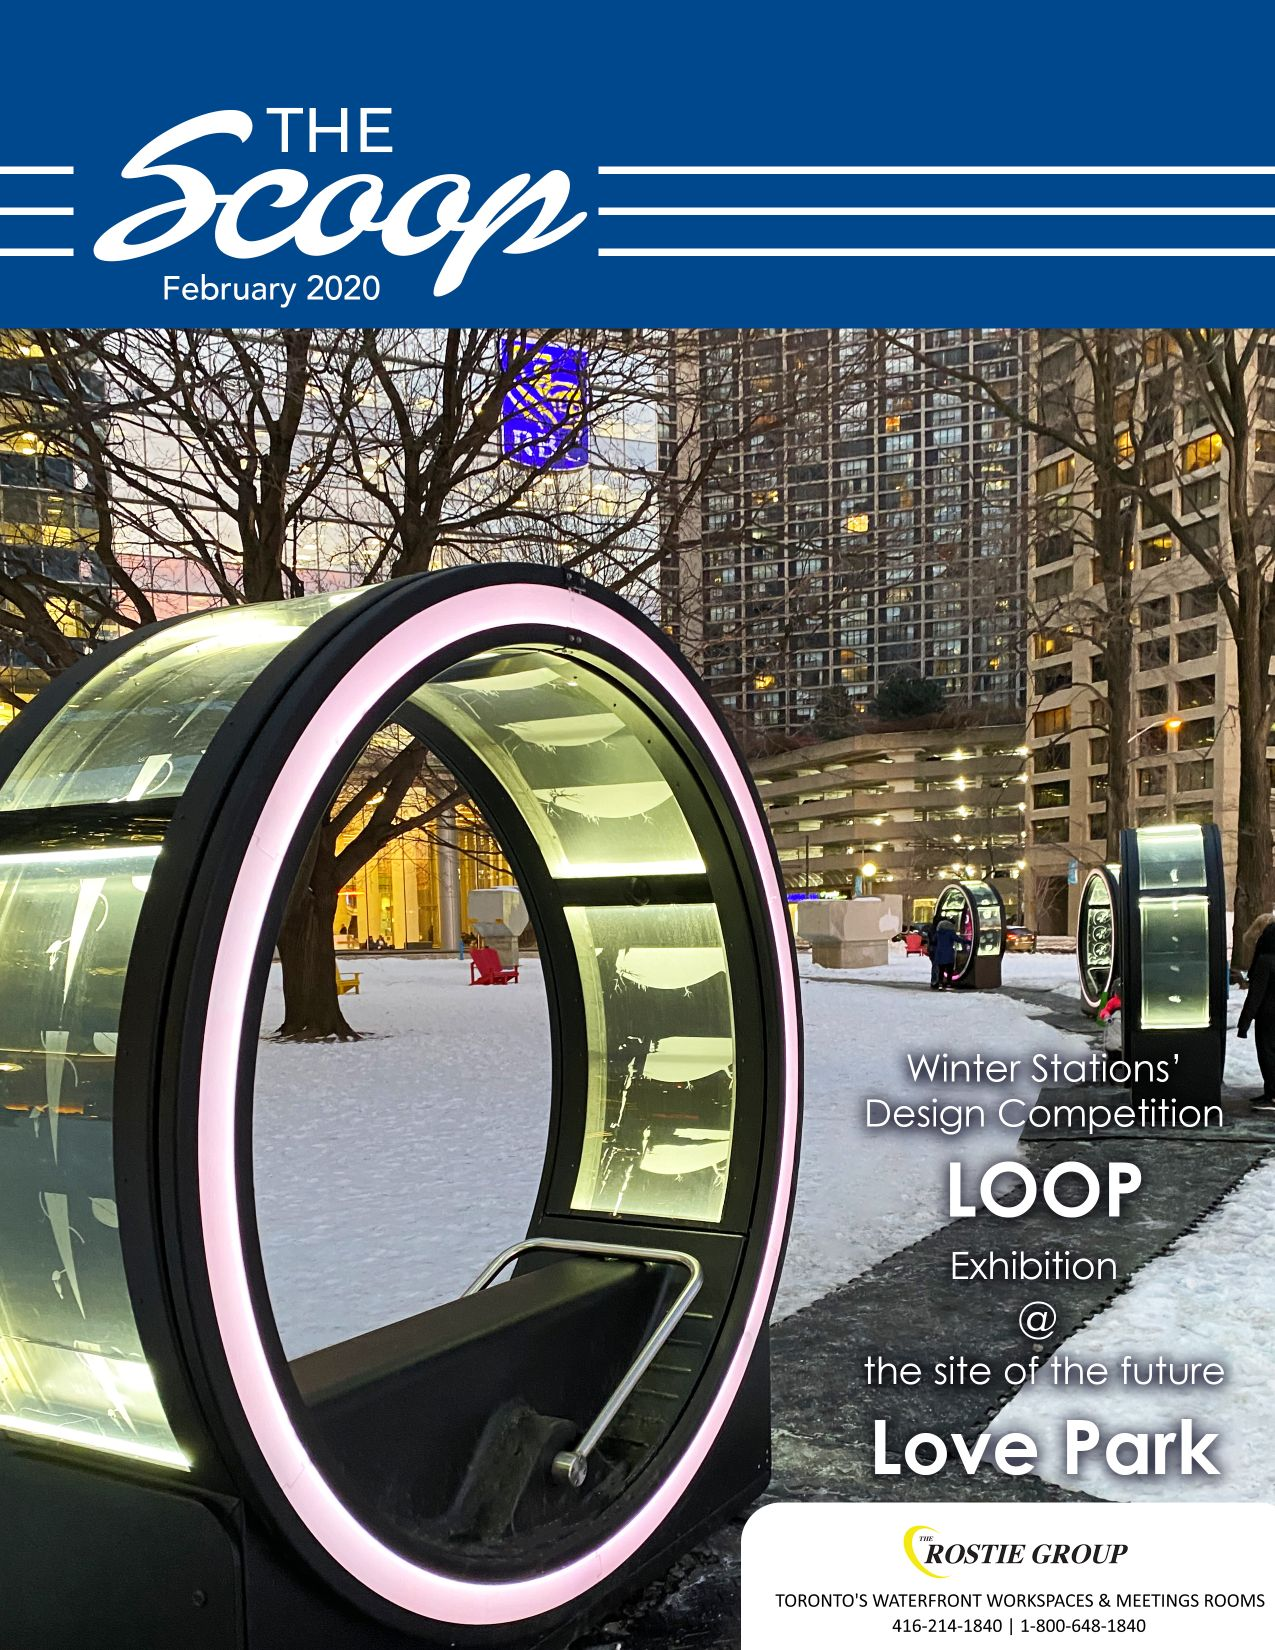 Rostie Group Scoop February 2020 Cover